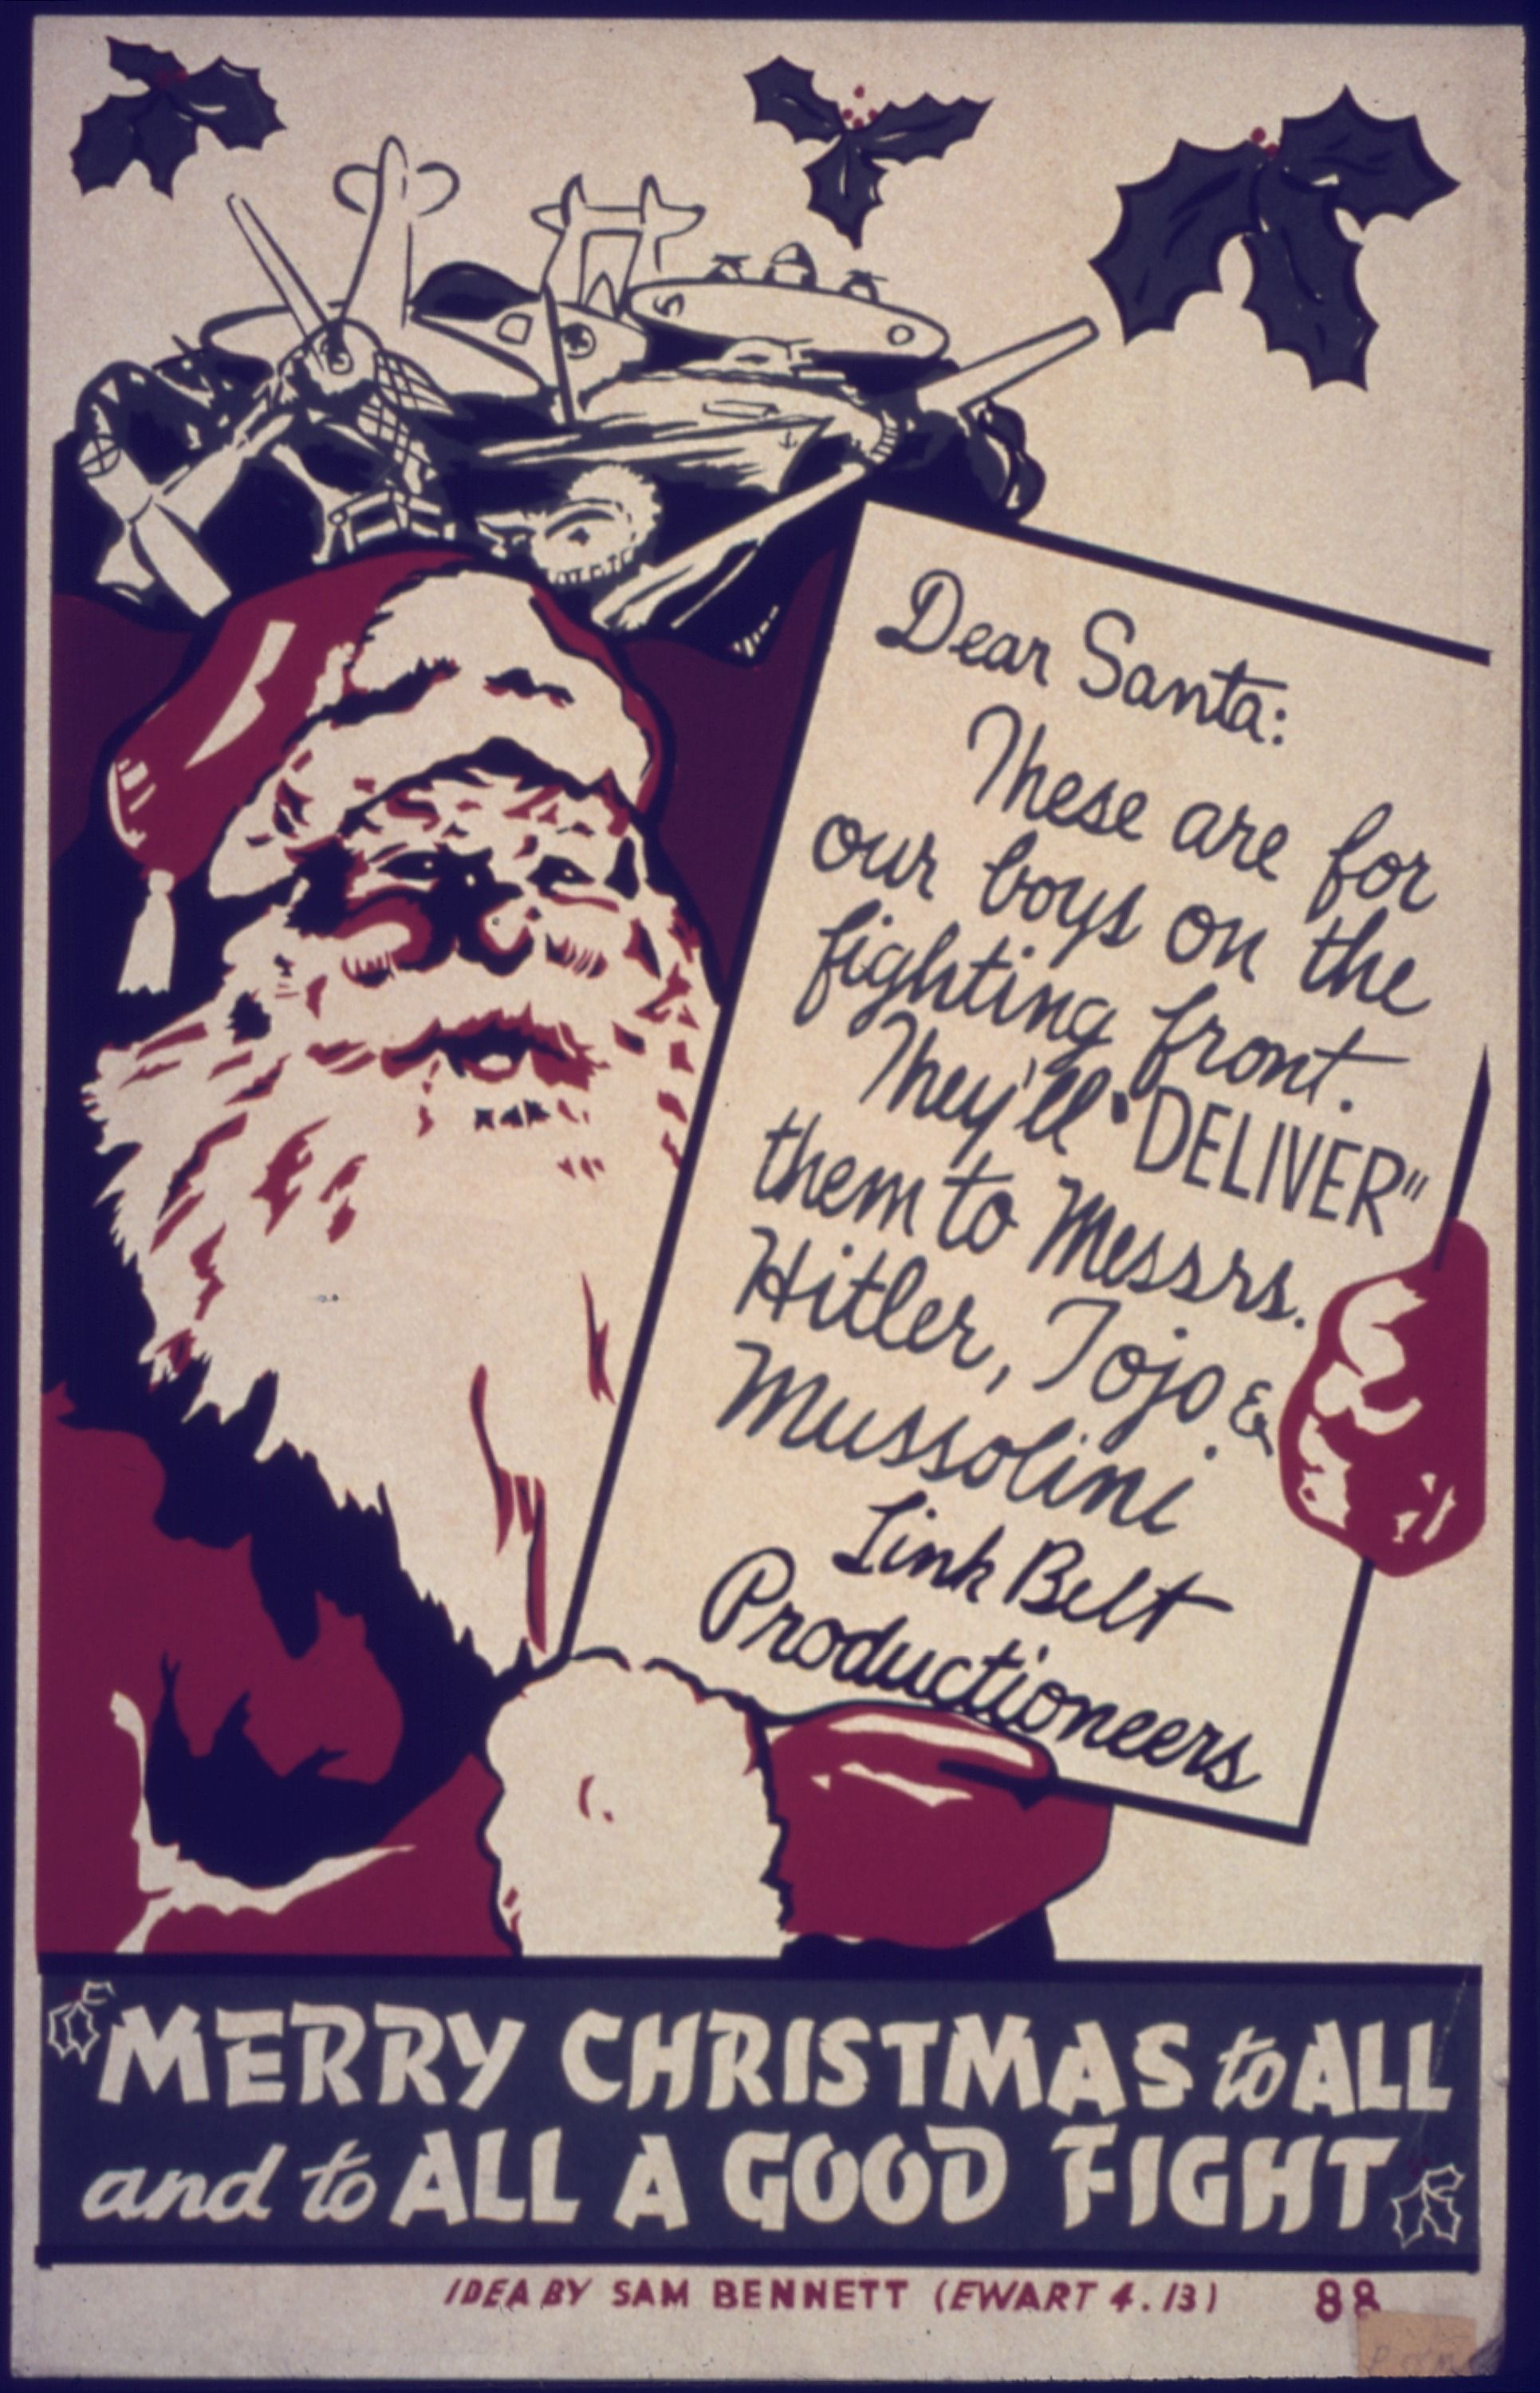 Merry Christmas to all and to all a good fight! WWII Christmas card ...